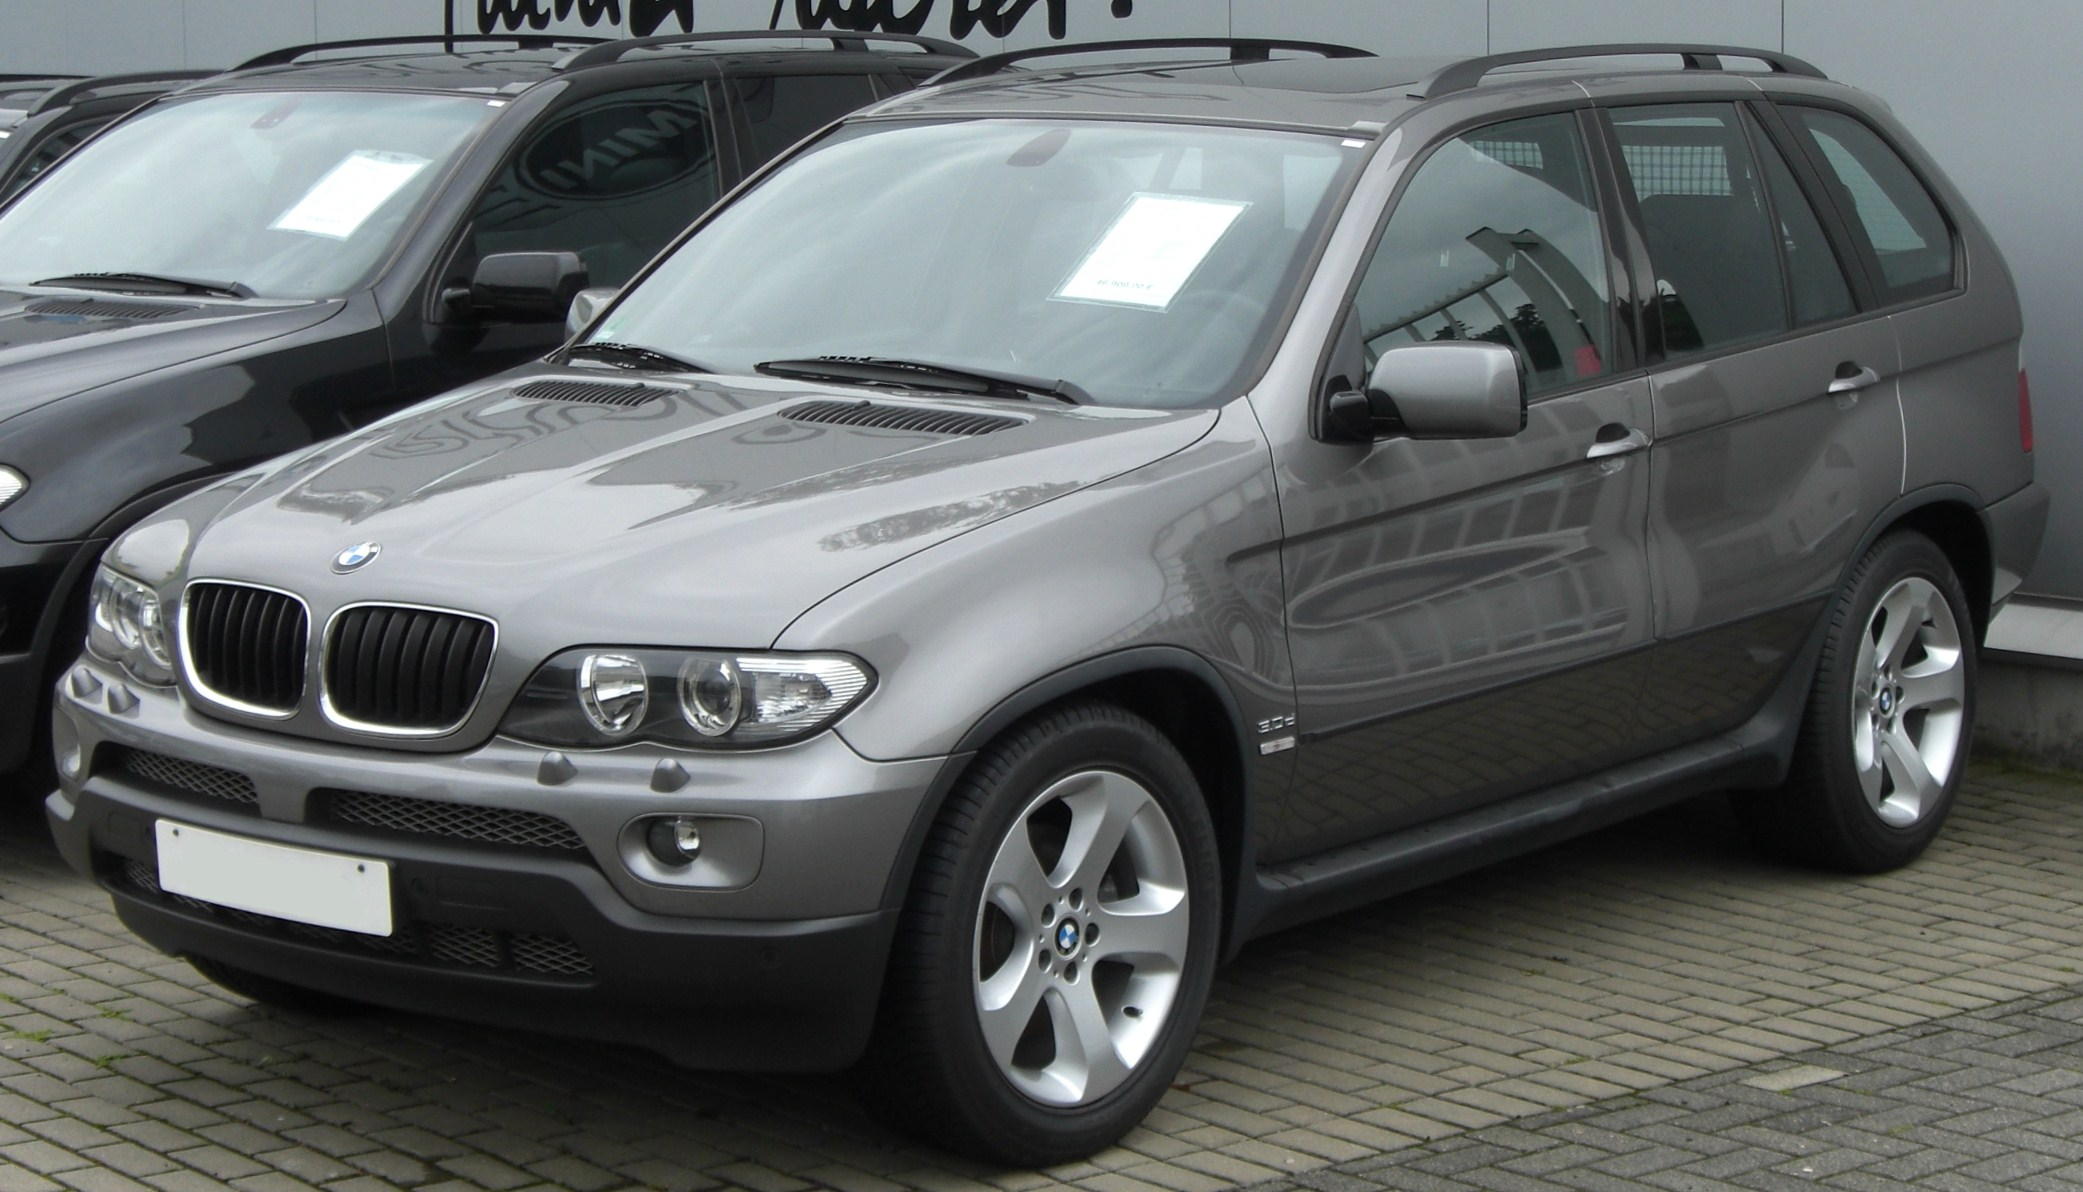 file bmw x5 e53 front jpg wikimedia commons. Black Bedroom Furniture Sets. Home Design Ideas